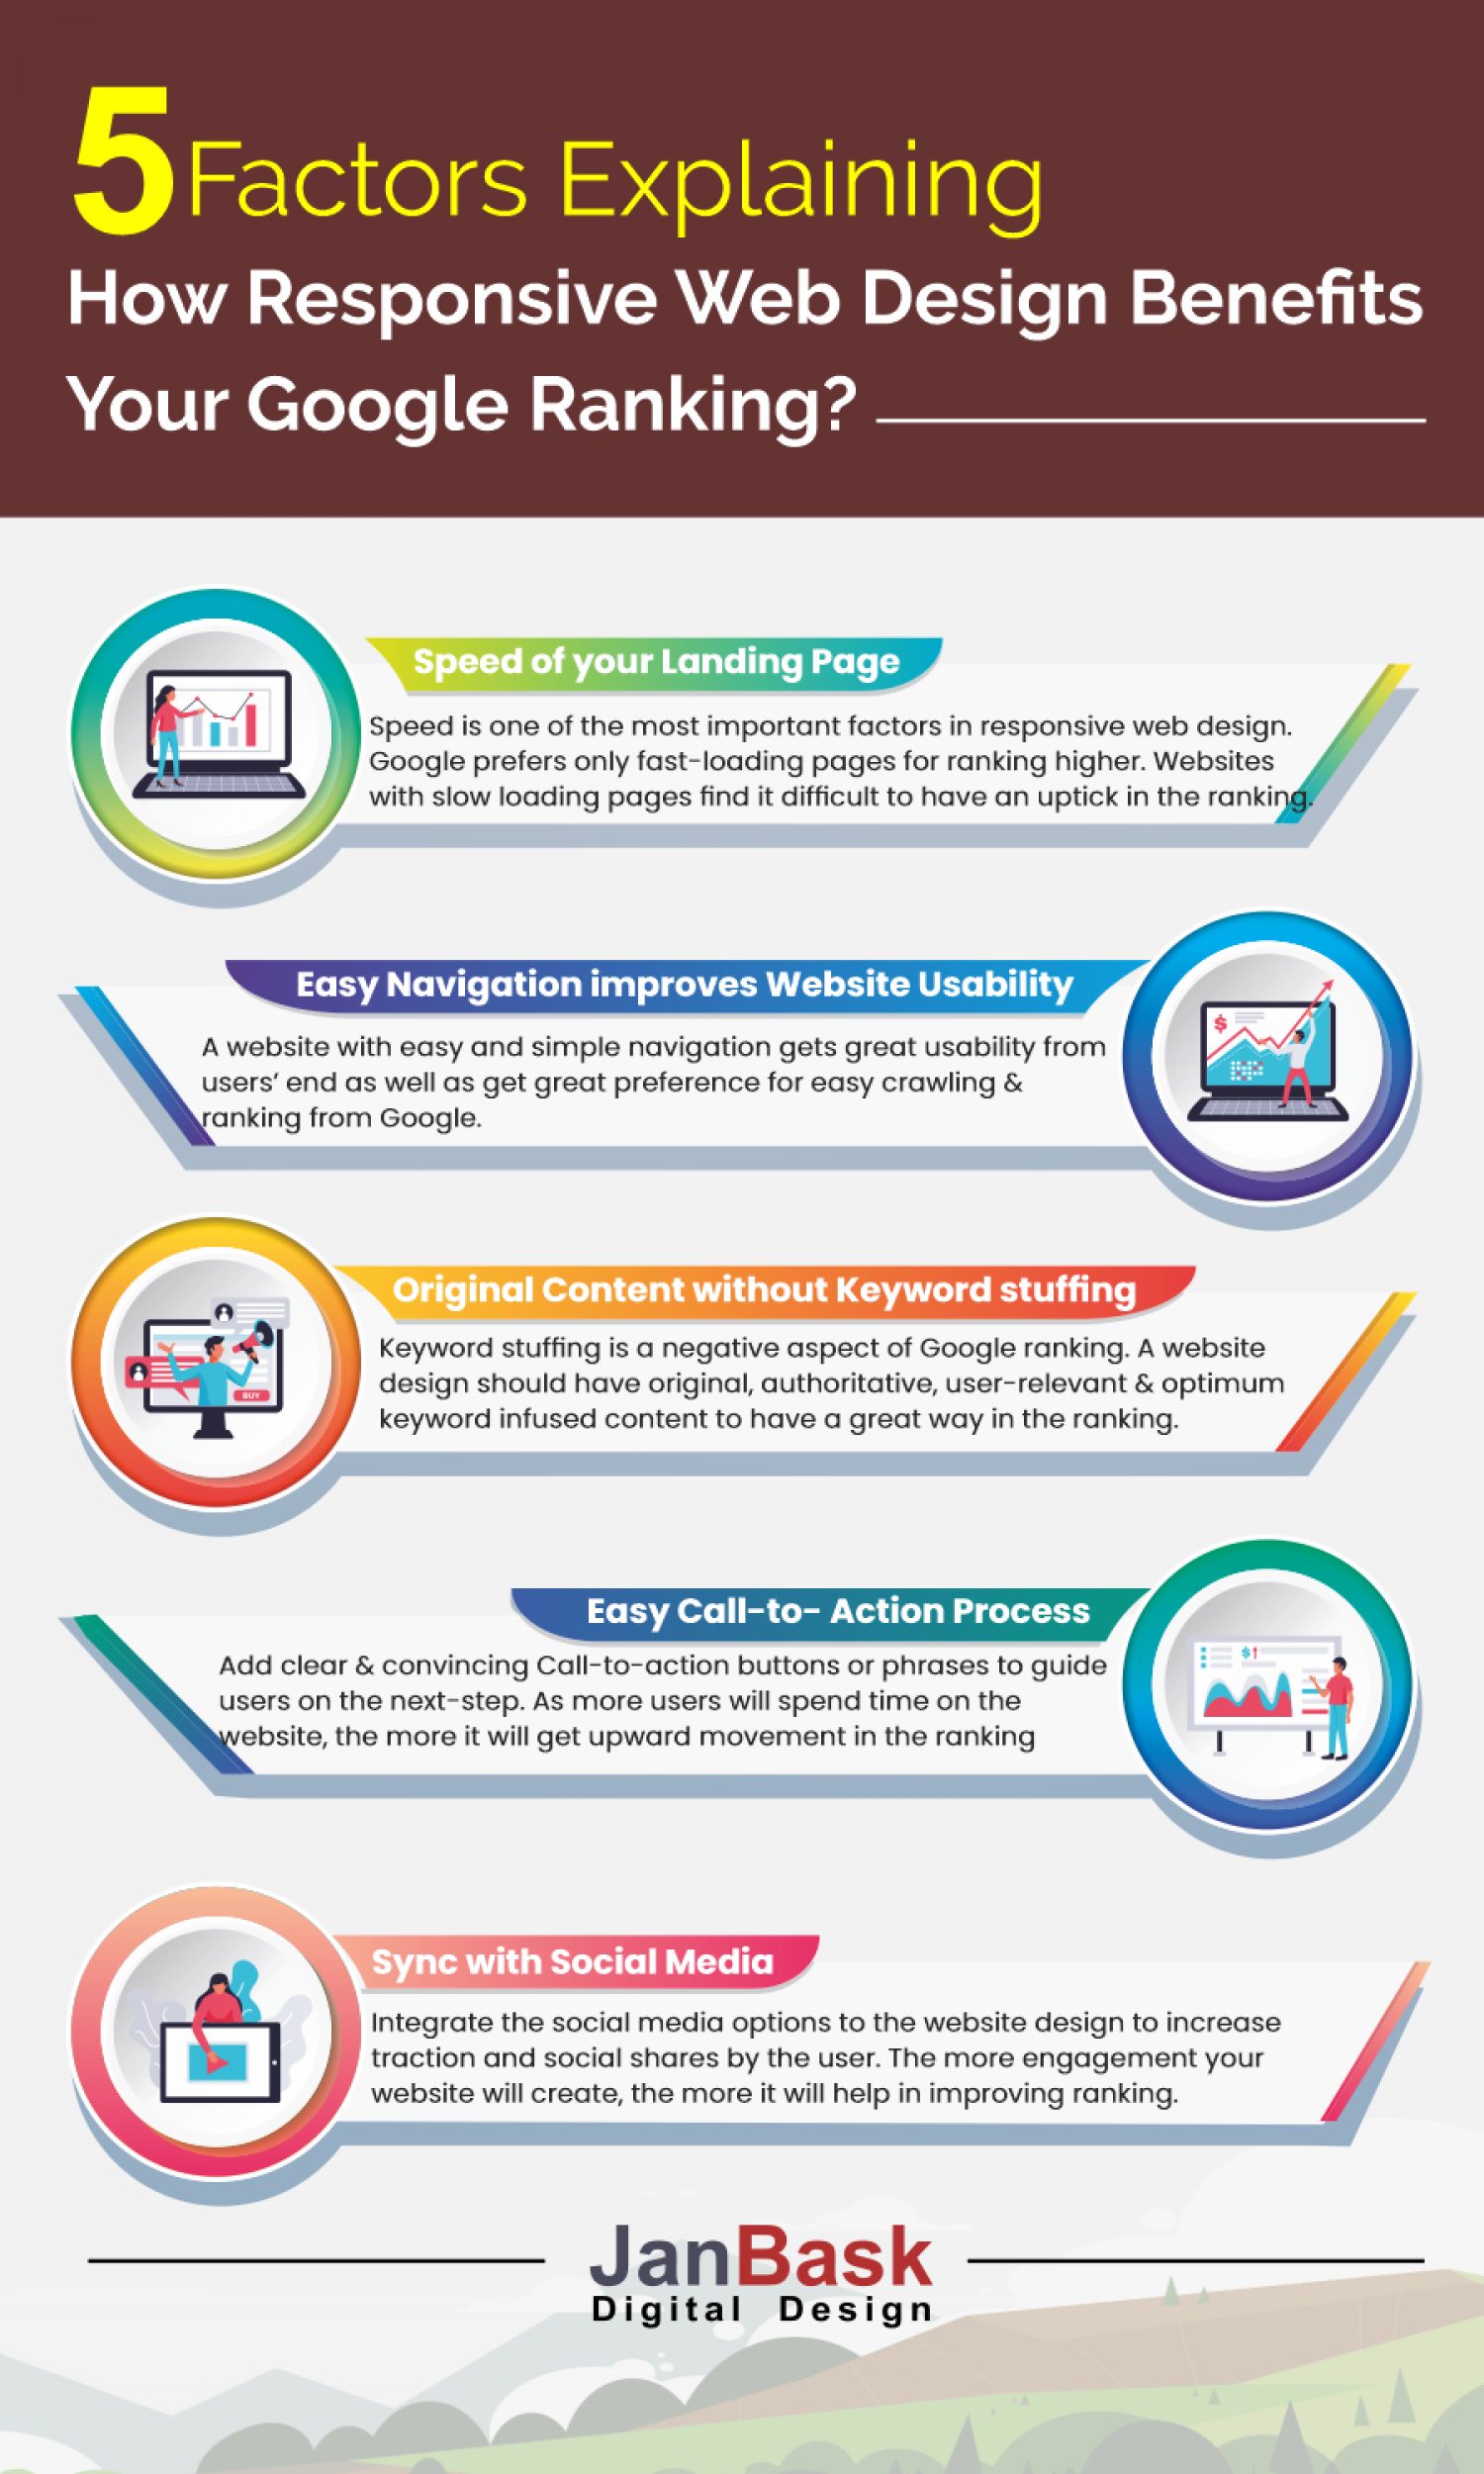 Top 5 Ways Responsive Web Design Benefits Your Google Ranking Infographic